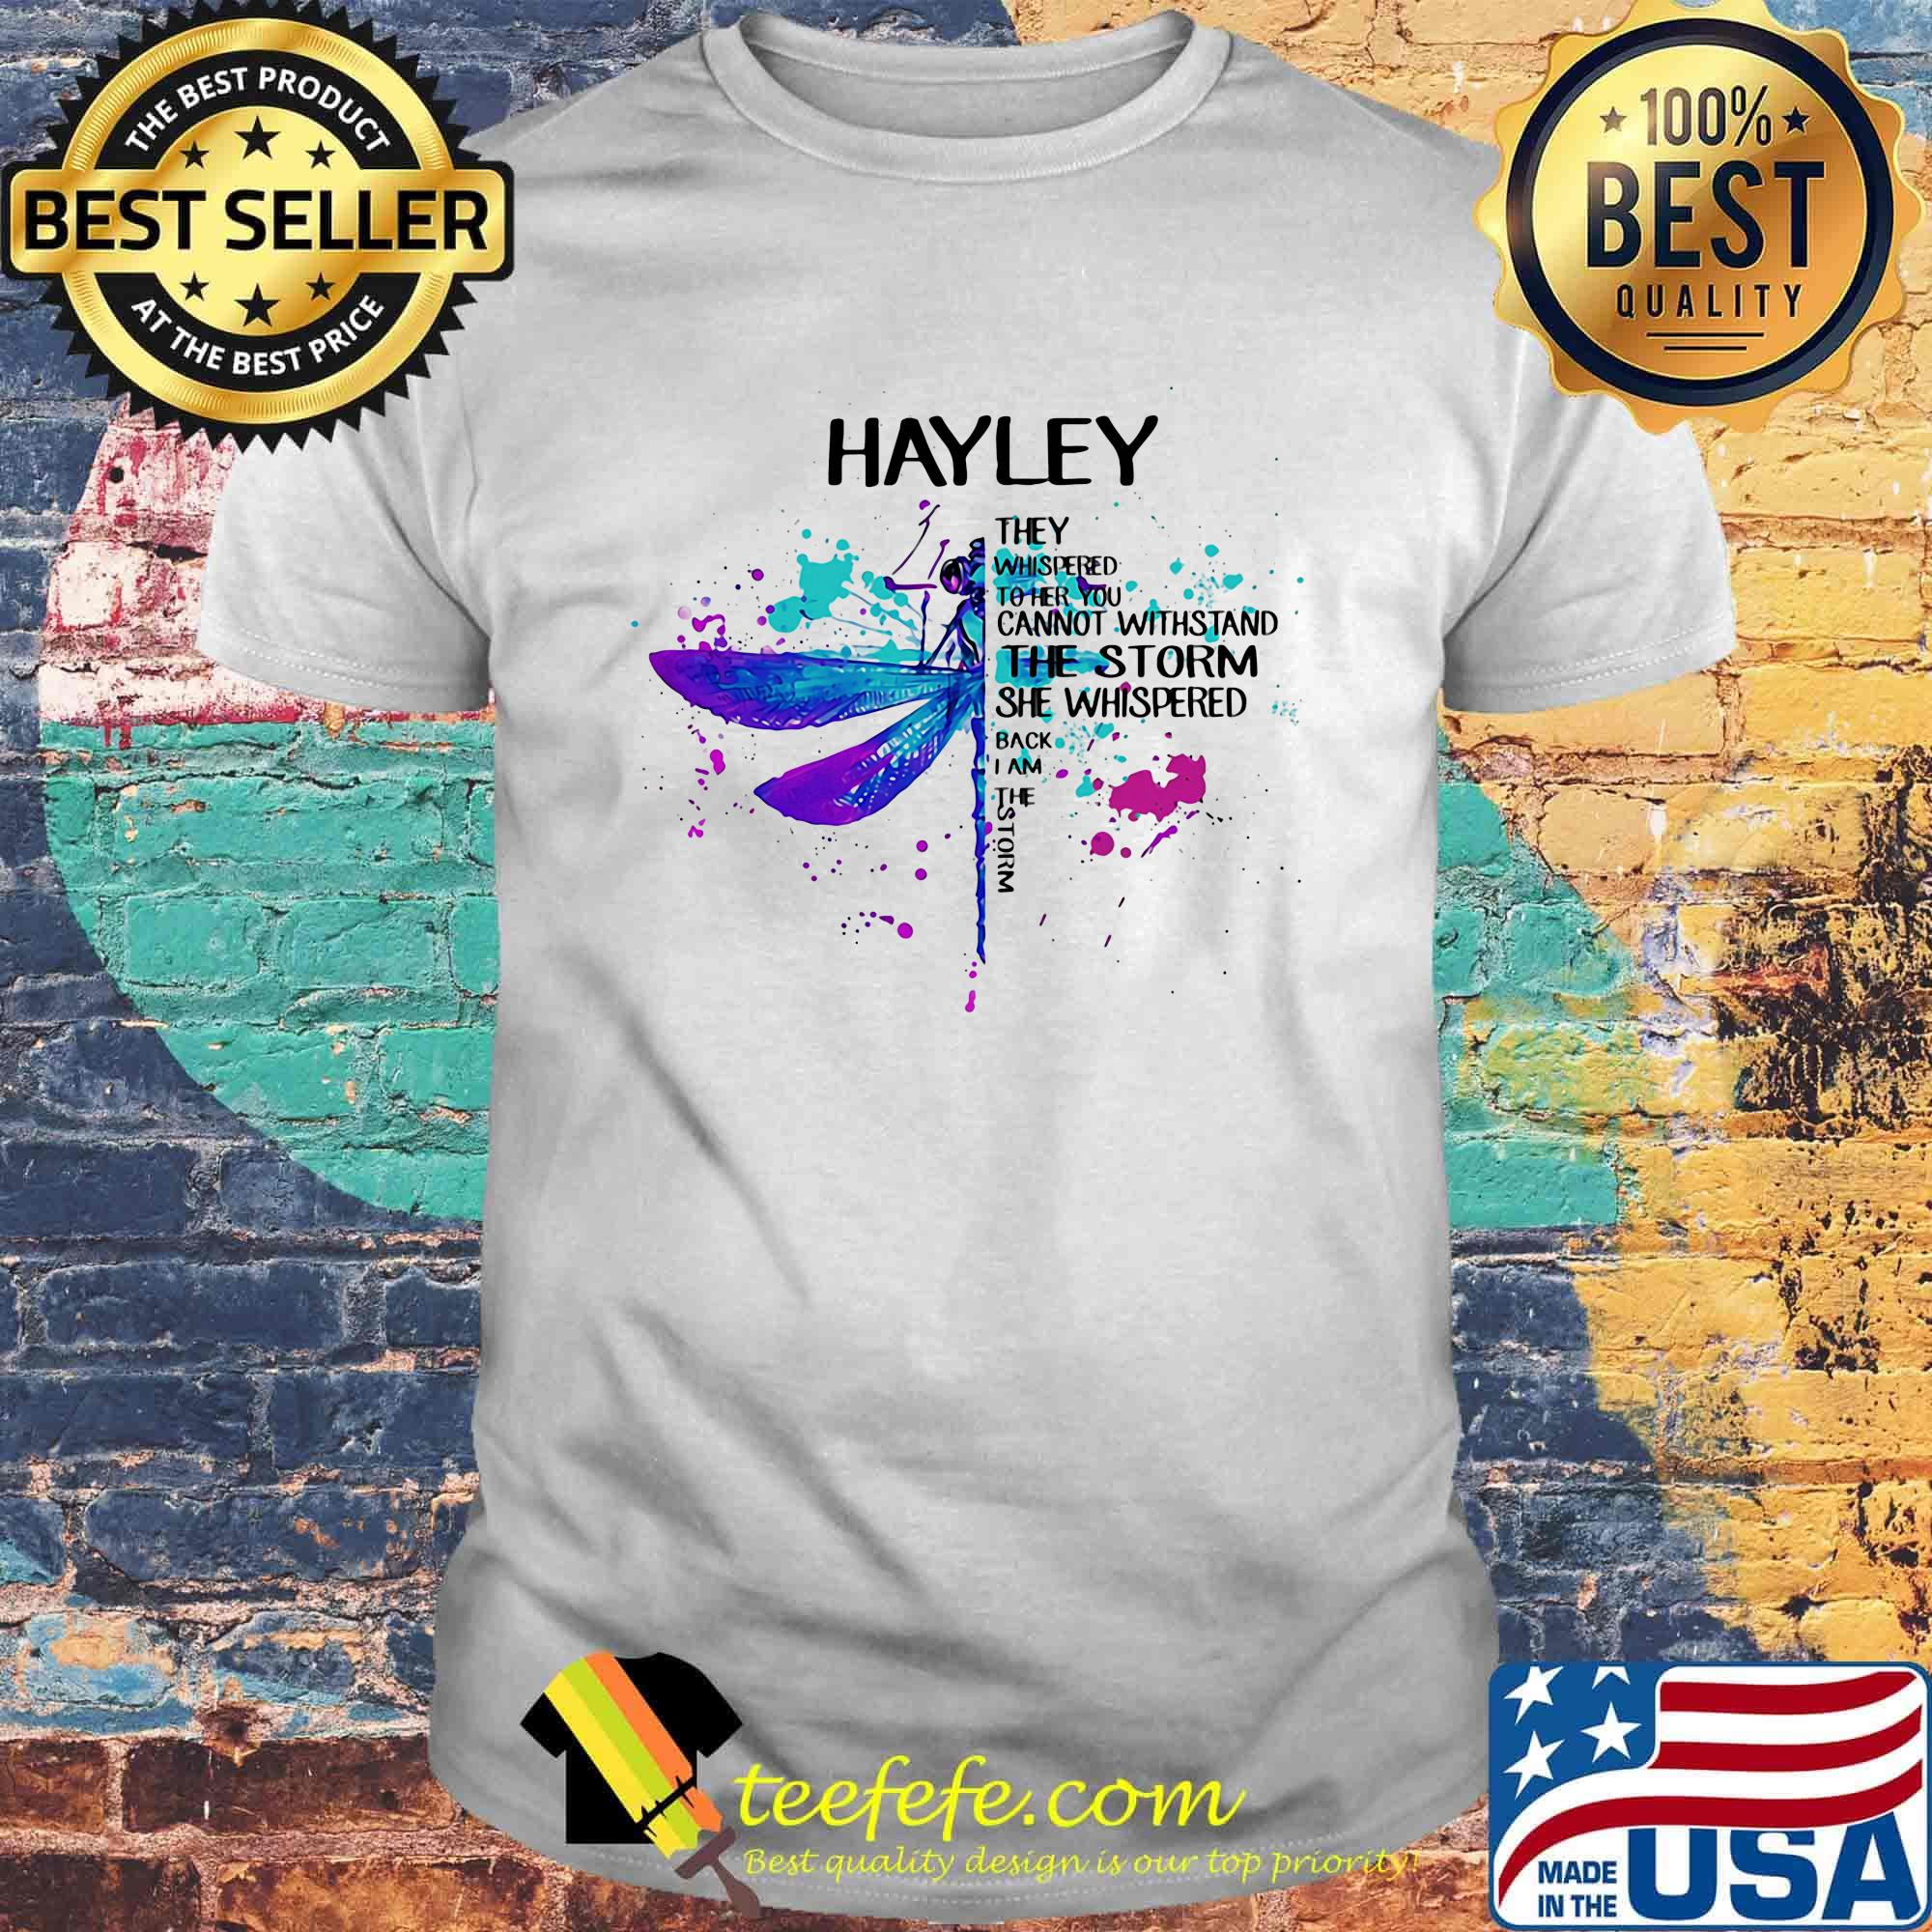 Hayley They Whispered To Her You Can Not Withstand The Storm She Whispered Back I Am The Storm Dragonfly Shirt